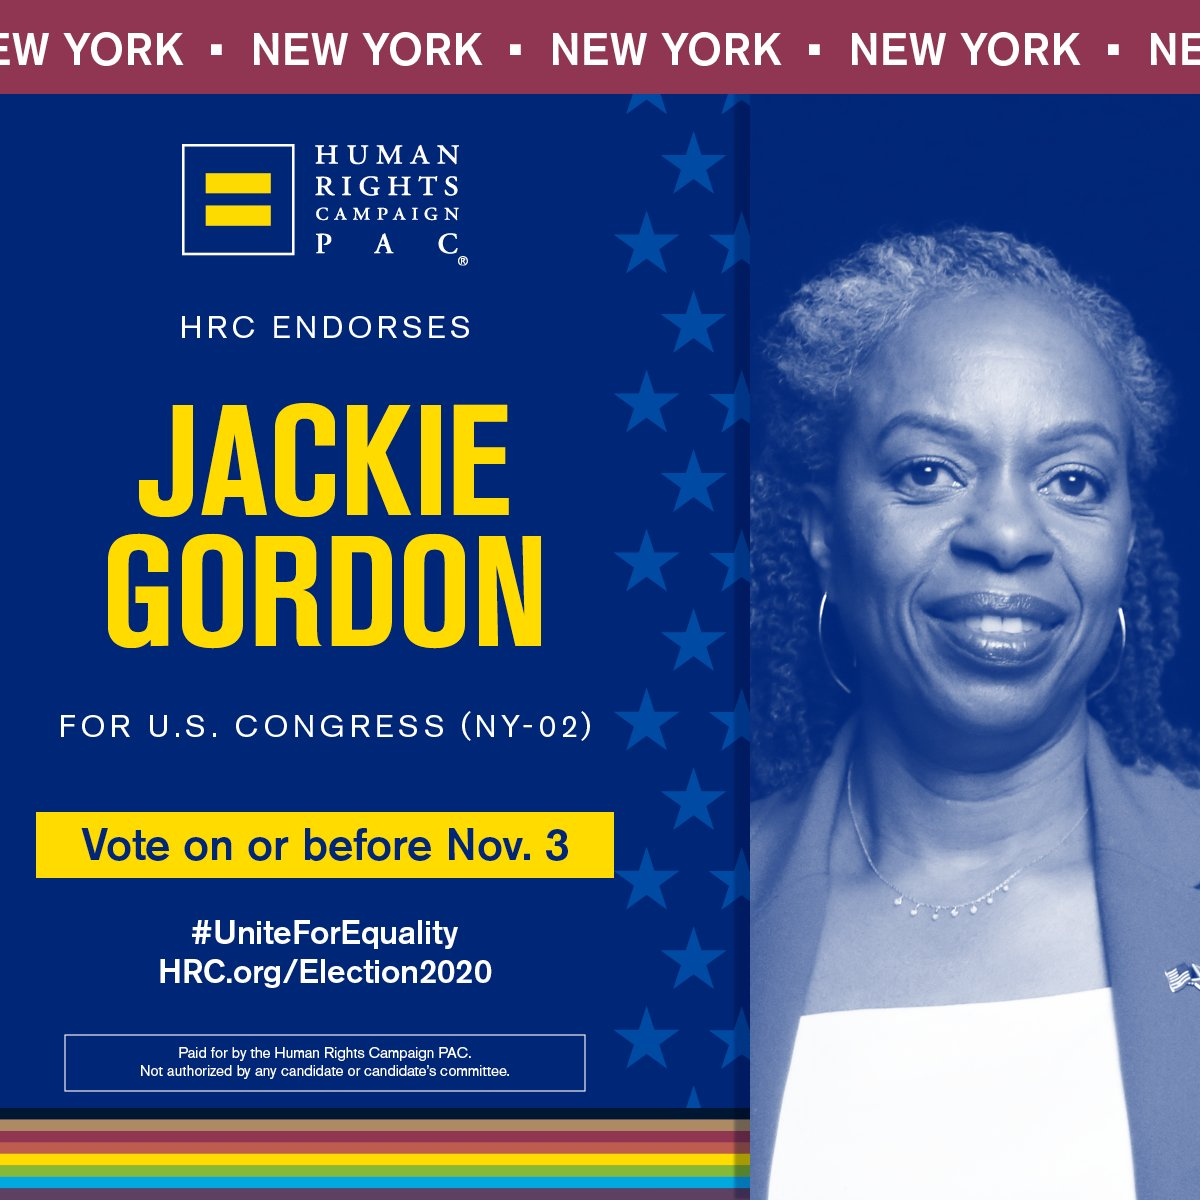 As we celebrate #PrideMonth, I'm proud to receive the endorsement of the @HRC, and I look forward to standing side by side with them to build a more inclusive Long Island. I will always be a strong voice for the LGBTQ community in Congress.